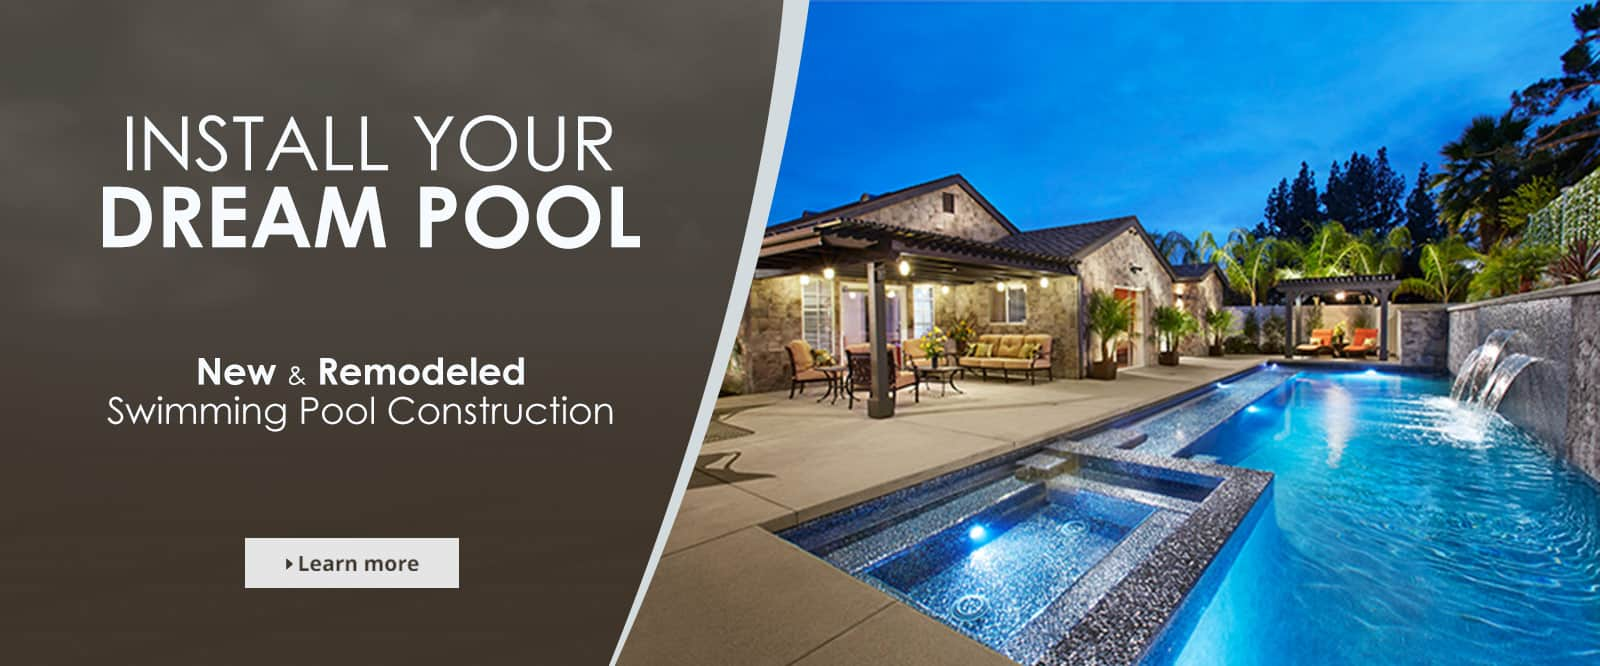 New and Remodeled Swimming Pools